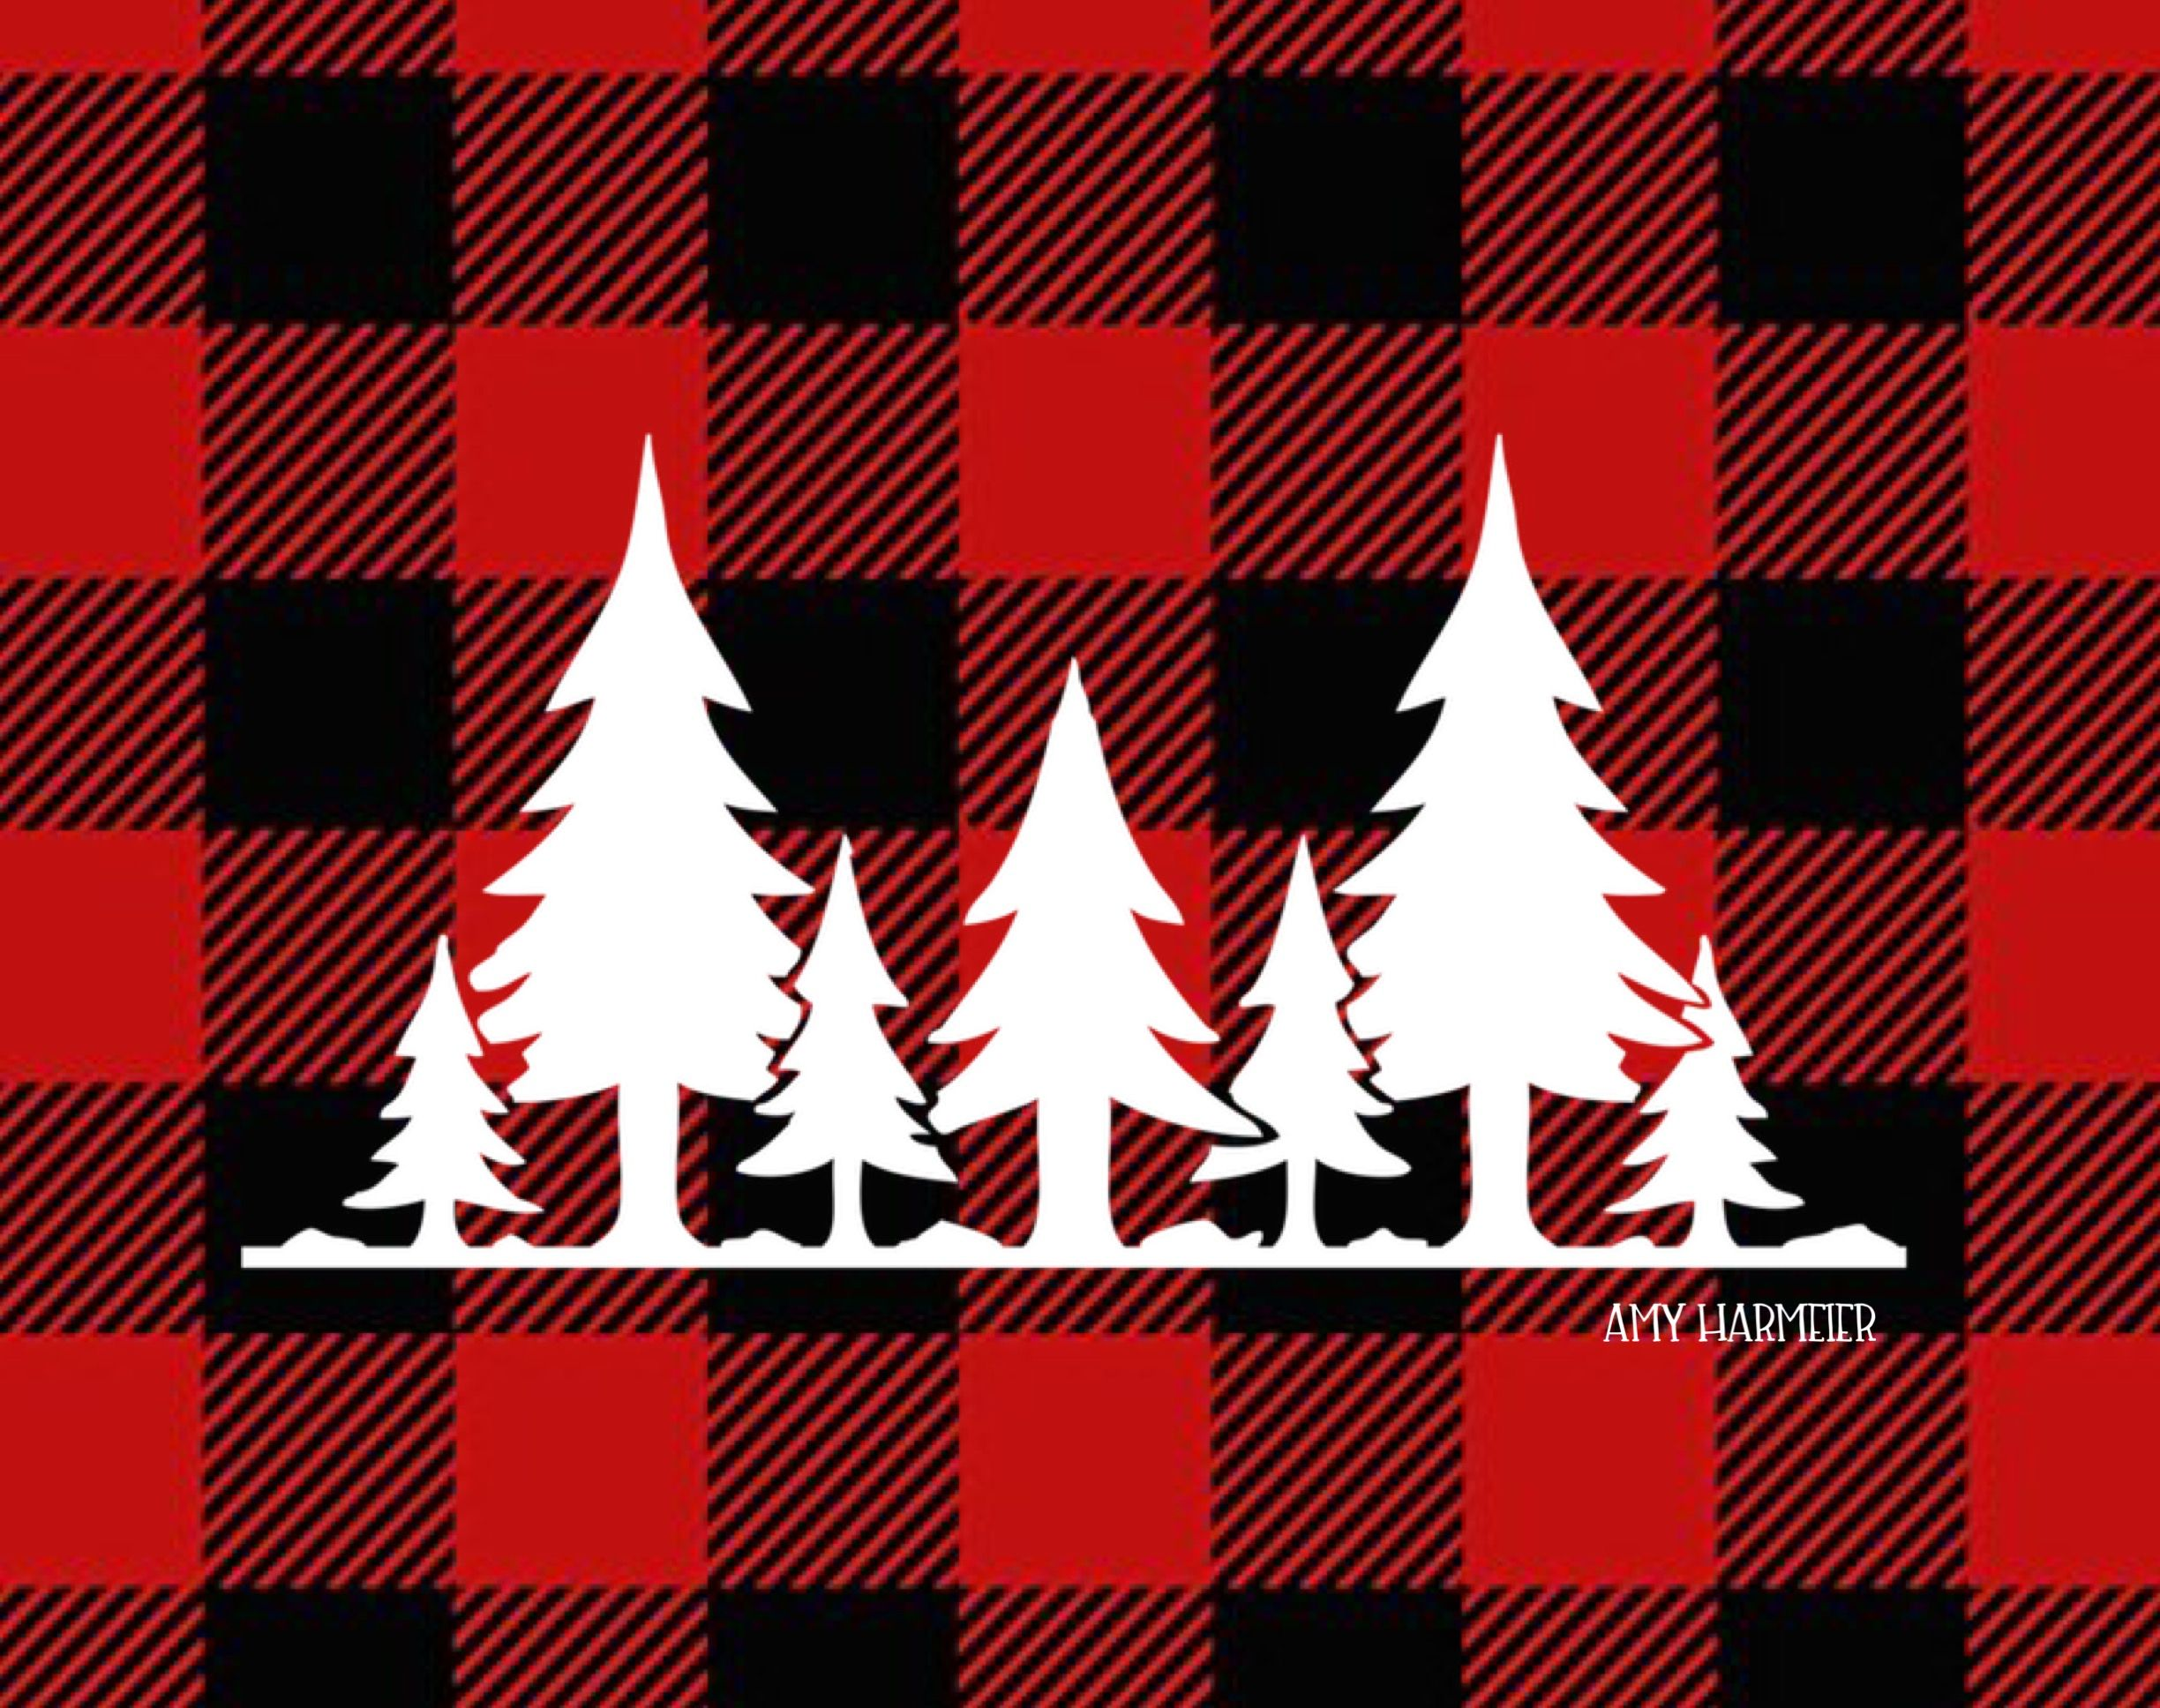 Pin by Amy Harmeier on Christmas Plaid wallpaper